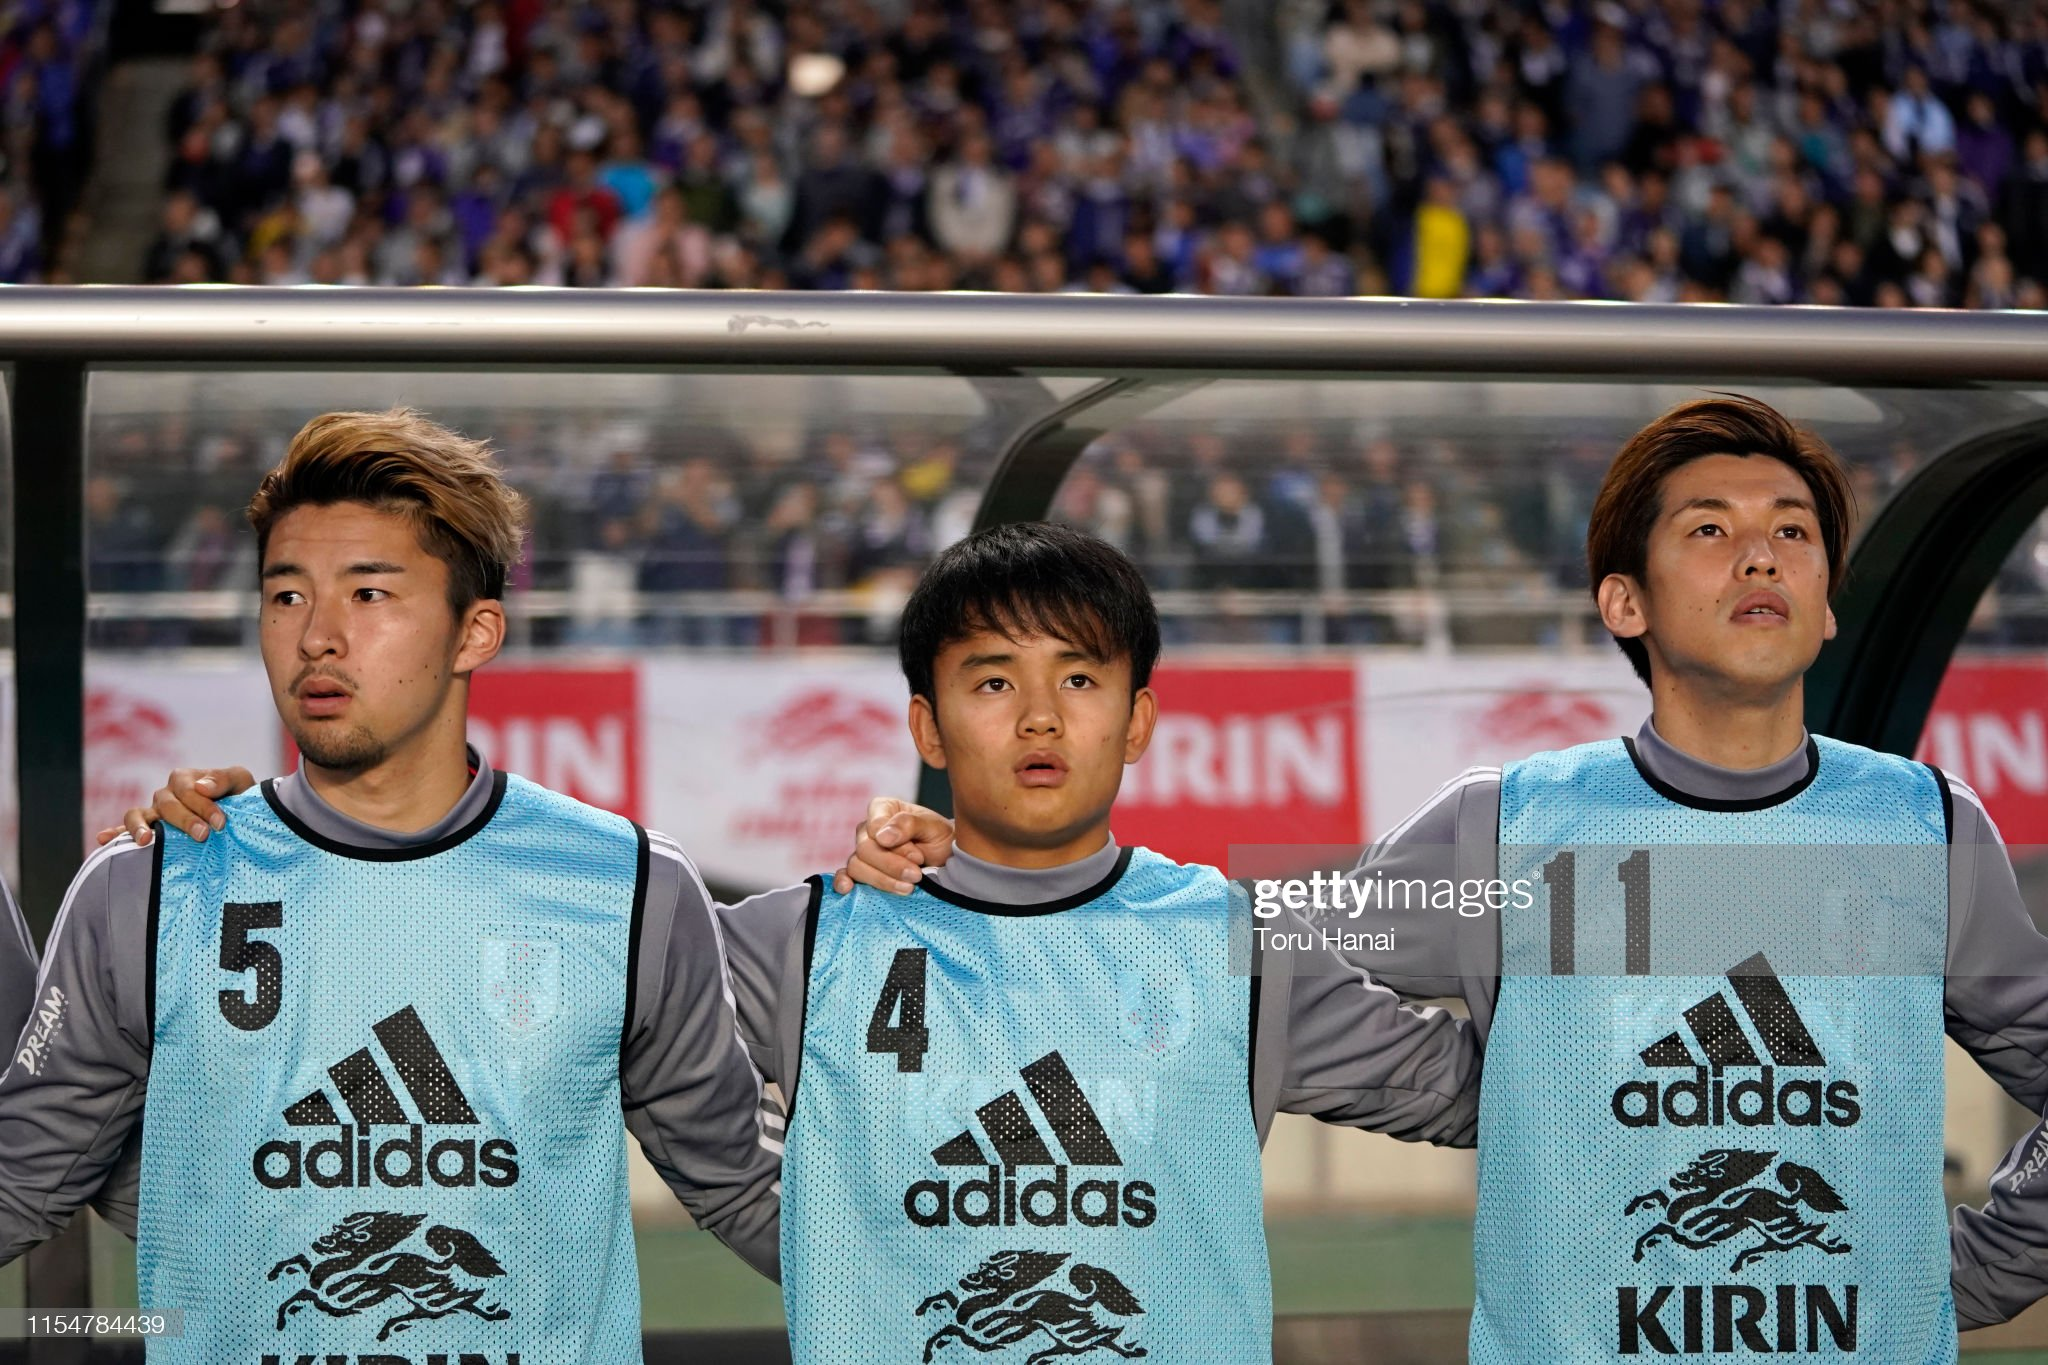 ¿Cuánto mide Takefusa Kubo? - Estatura real 1,70 - Altura - Real height Yuta-nakayama-takefusa-kubo-and-yuya-osako-of-japan-stand-for-the-picture-id1154784439?s=2048x2048